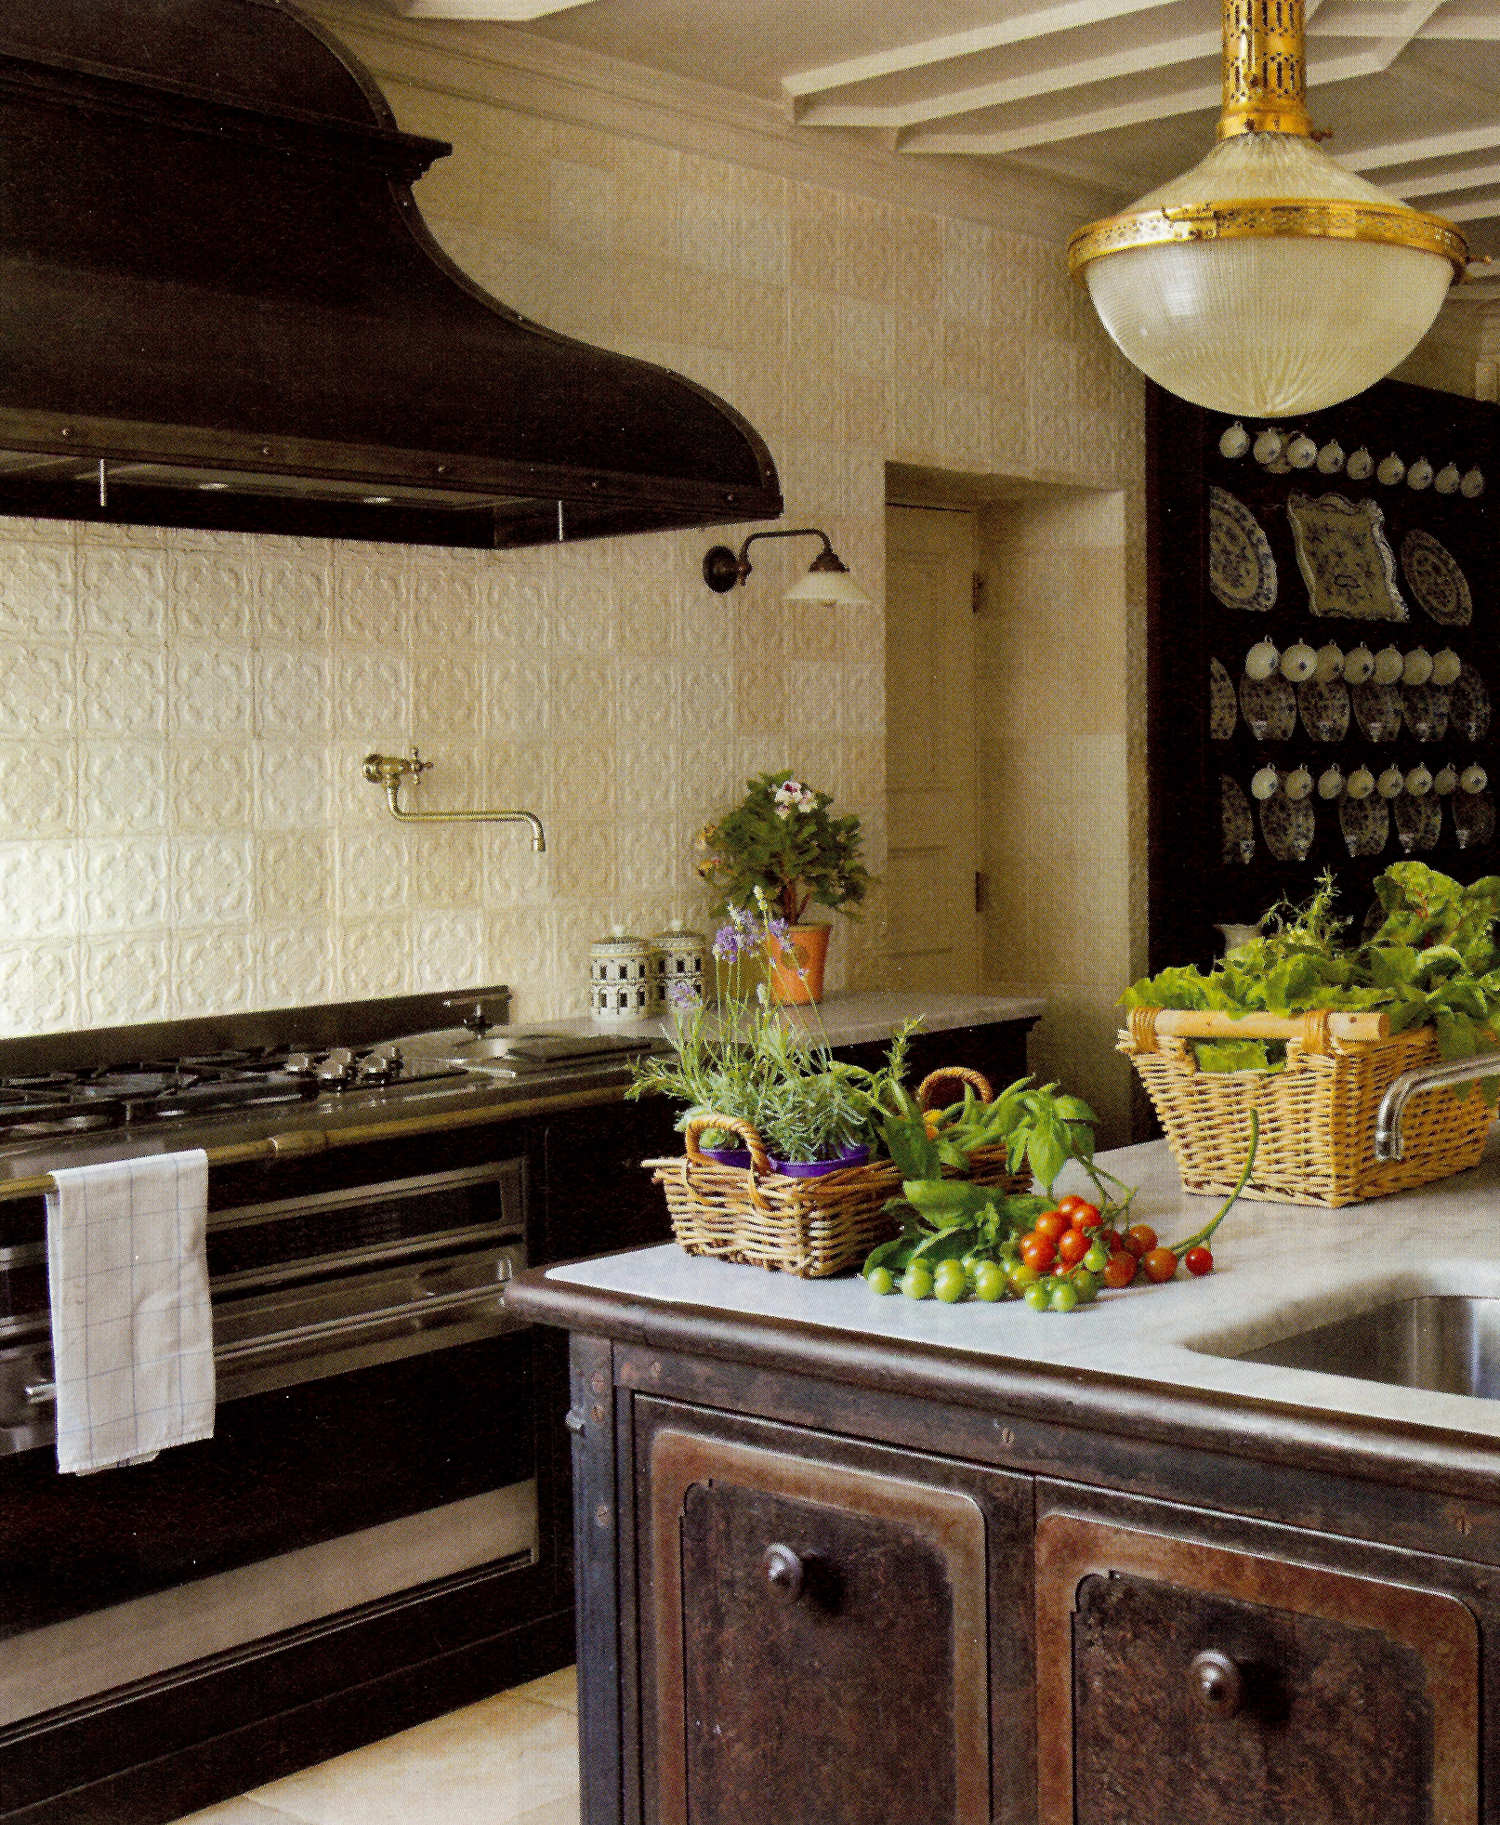 range wall of a Studio Peregalli kitchen with 19th century tile with a cast iron stove repurposed as a kitchen island - Elledecor via Atticmag